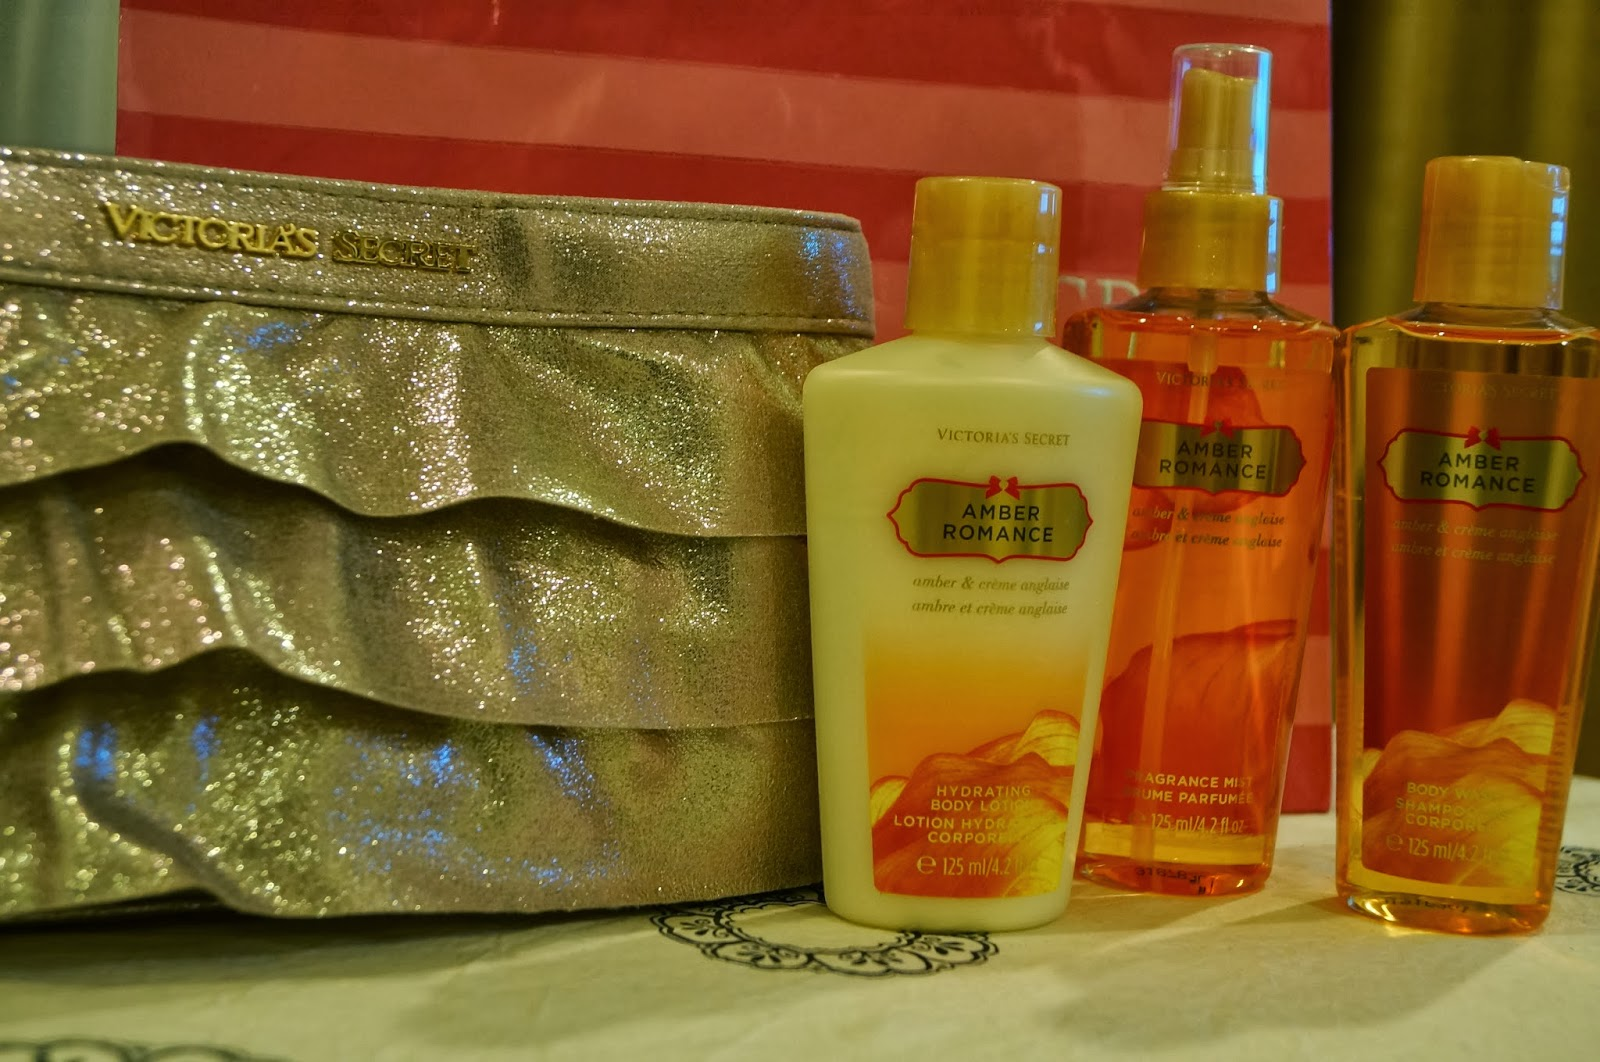 4923ac64e74 FREE  CLUTCH MARKDOWN PRICE  RM85. Ready In Stock Victoria Secret Amber  Romance Gift Set - Hyde rating Body Lotion 125ml - Body mist 125ml - Body  wash 125ml